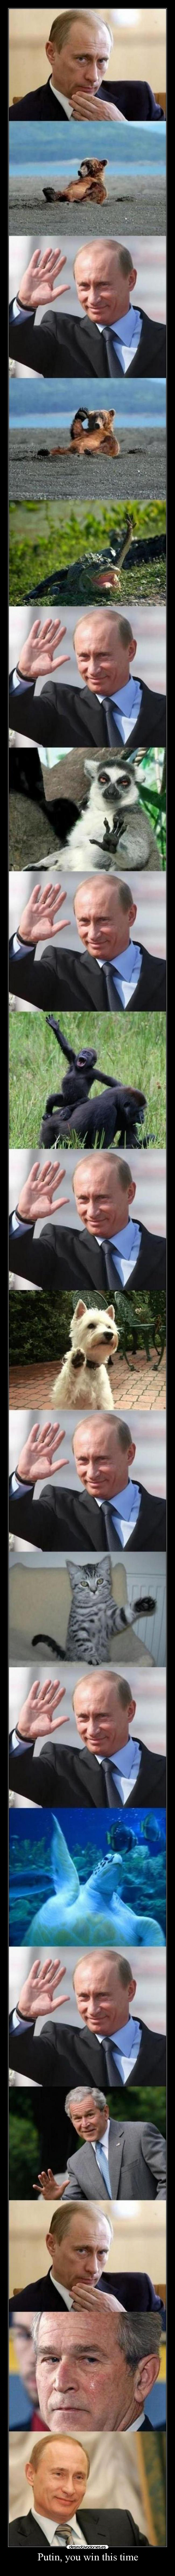 Putin, you win this time -